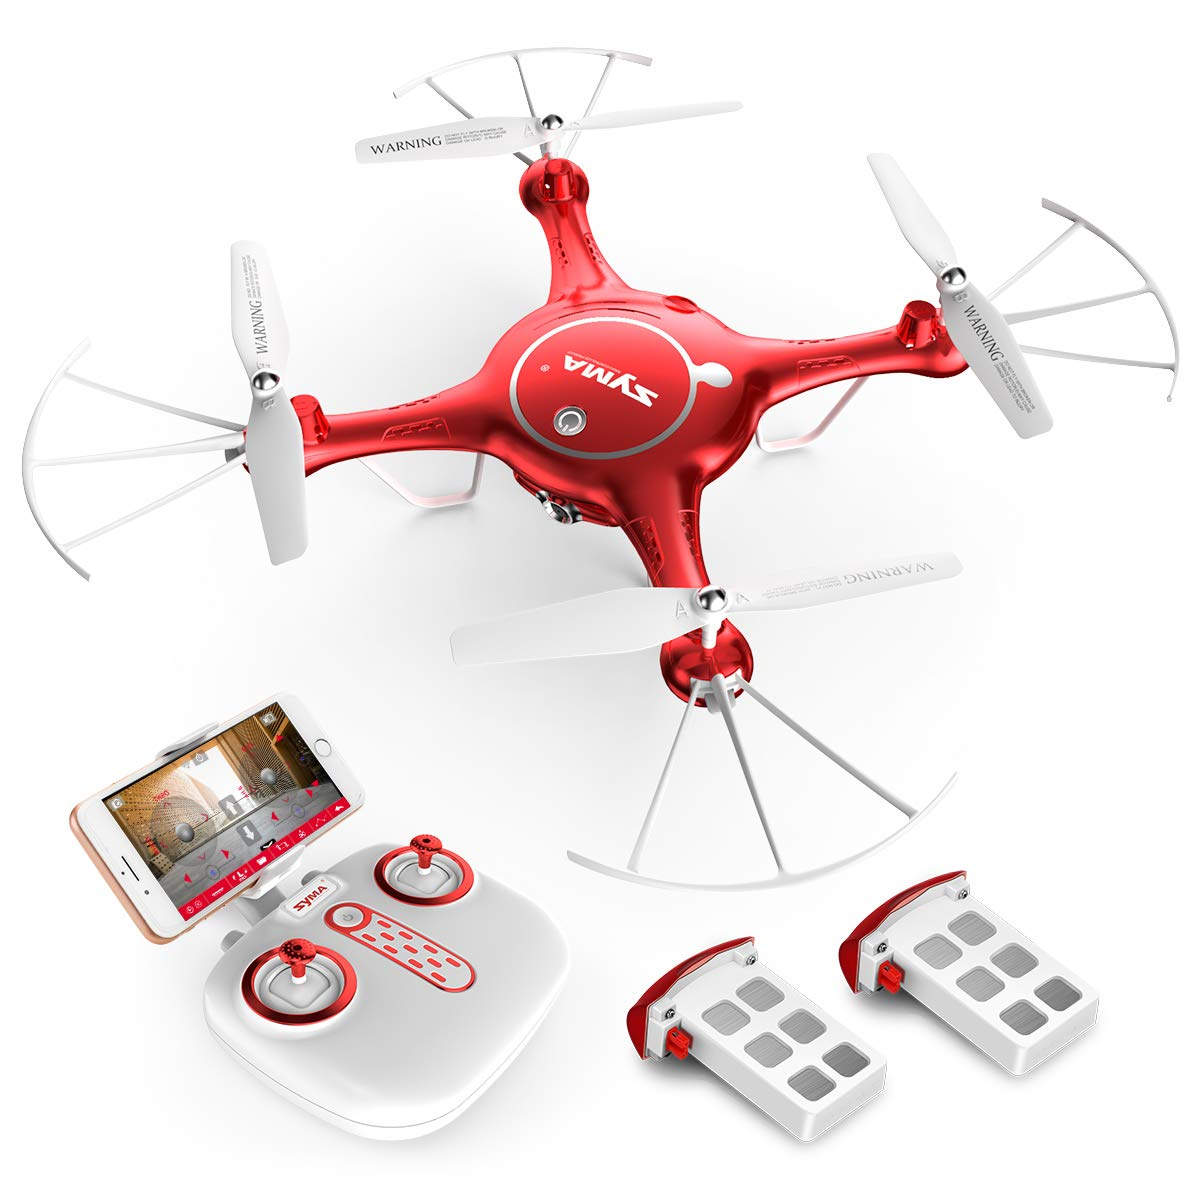 Save 80% on select product(s) with SYMA